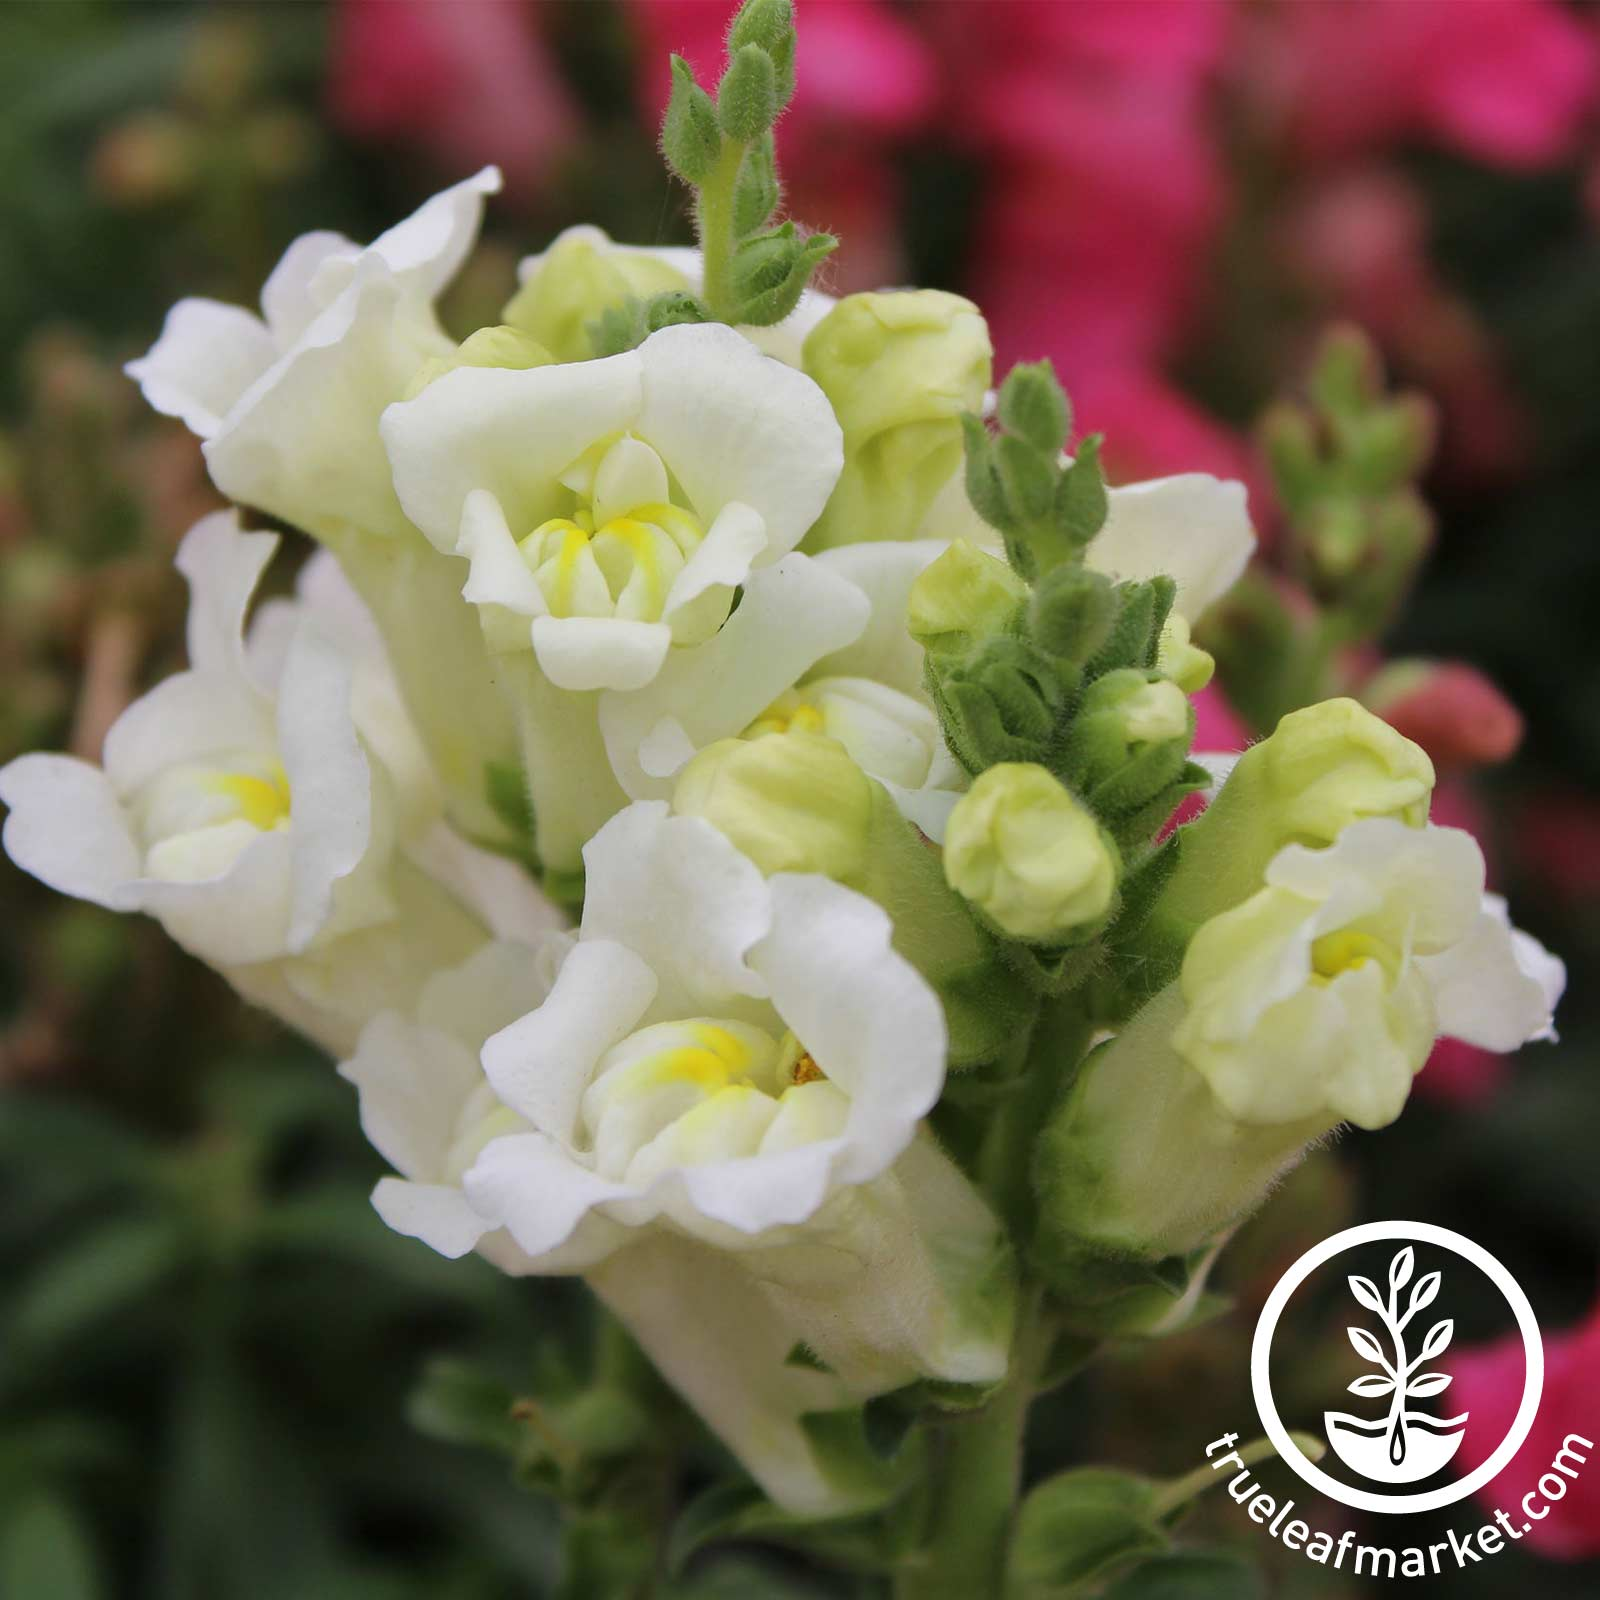 Snapdragon Floral Showers Series White Seed